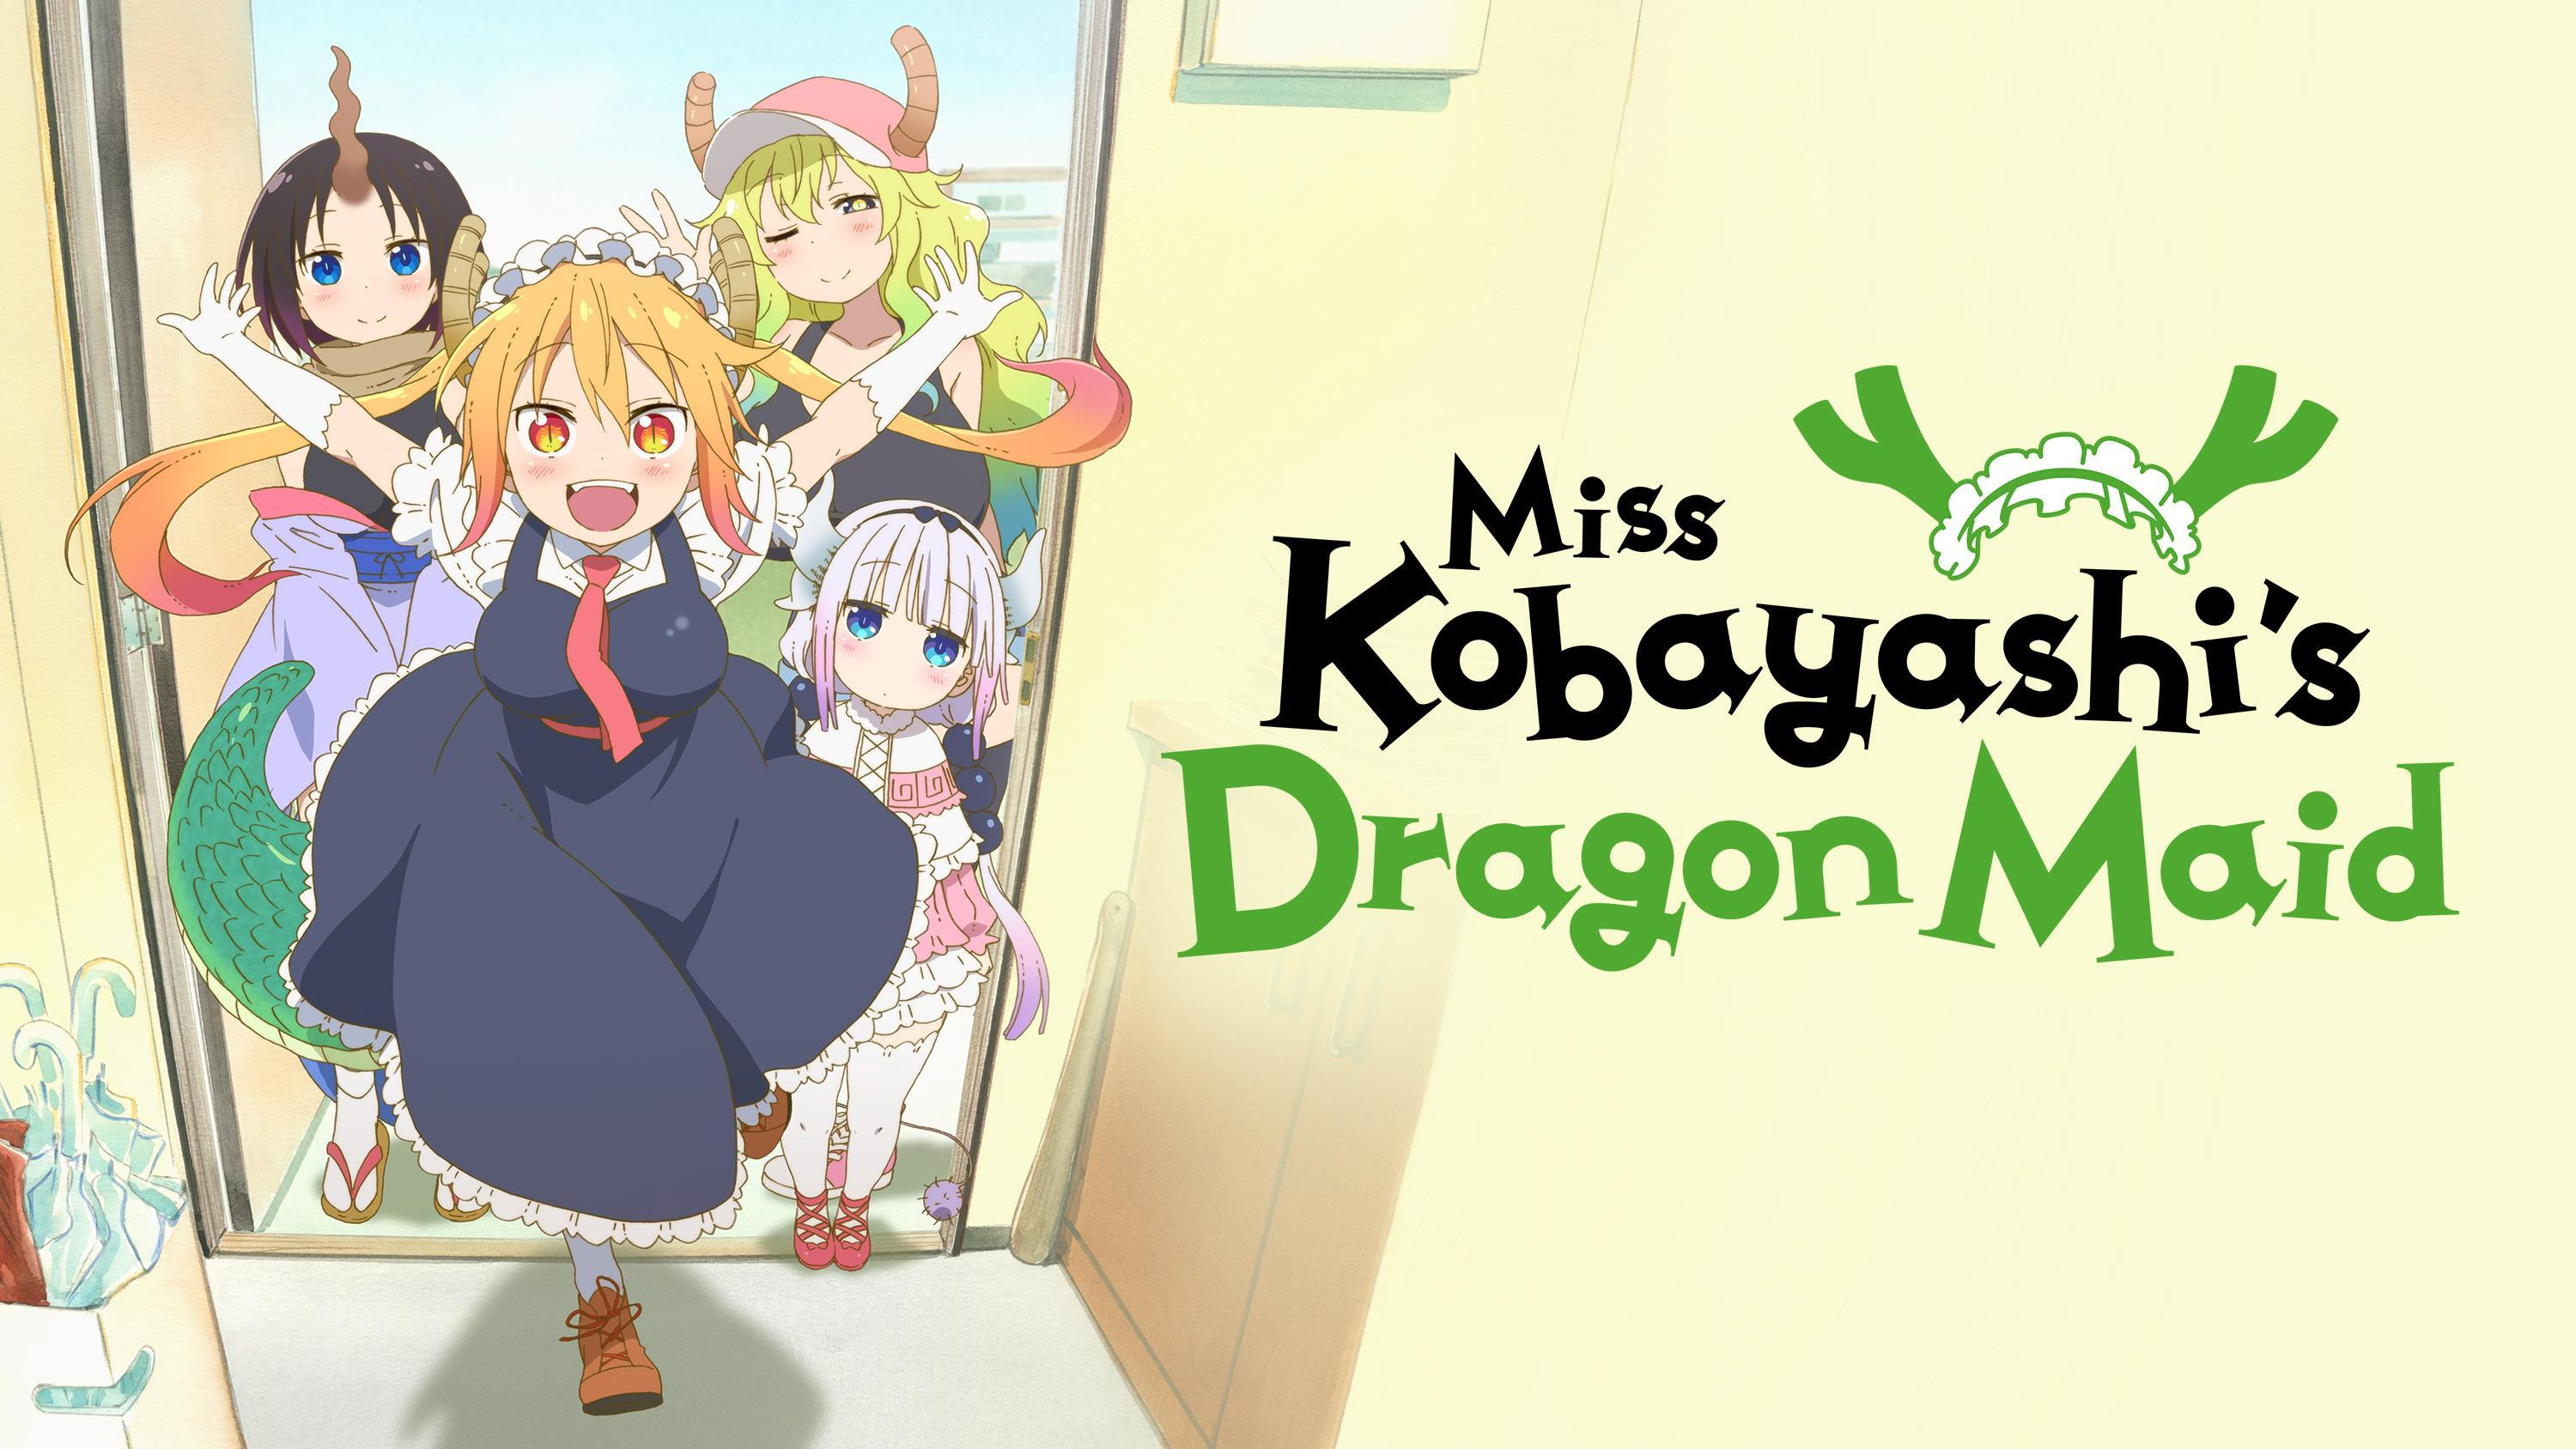 Comedy anime like The Great Jahy Will Not Be Defeated!, Miss Kobayashi's Dragon Maid